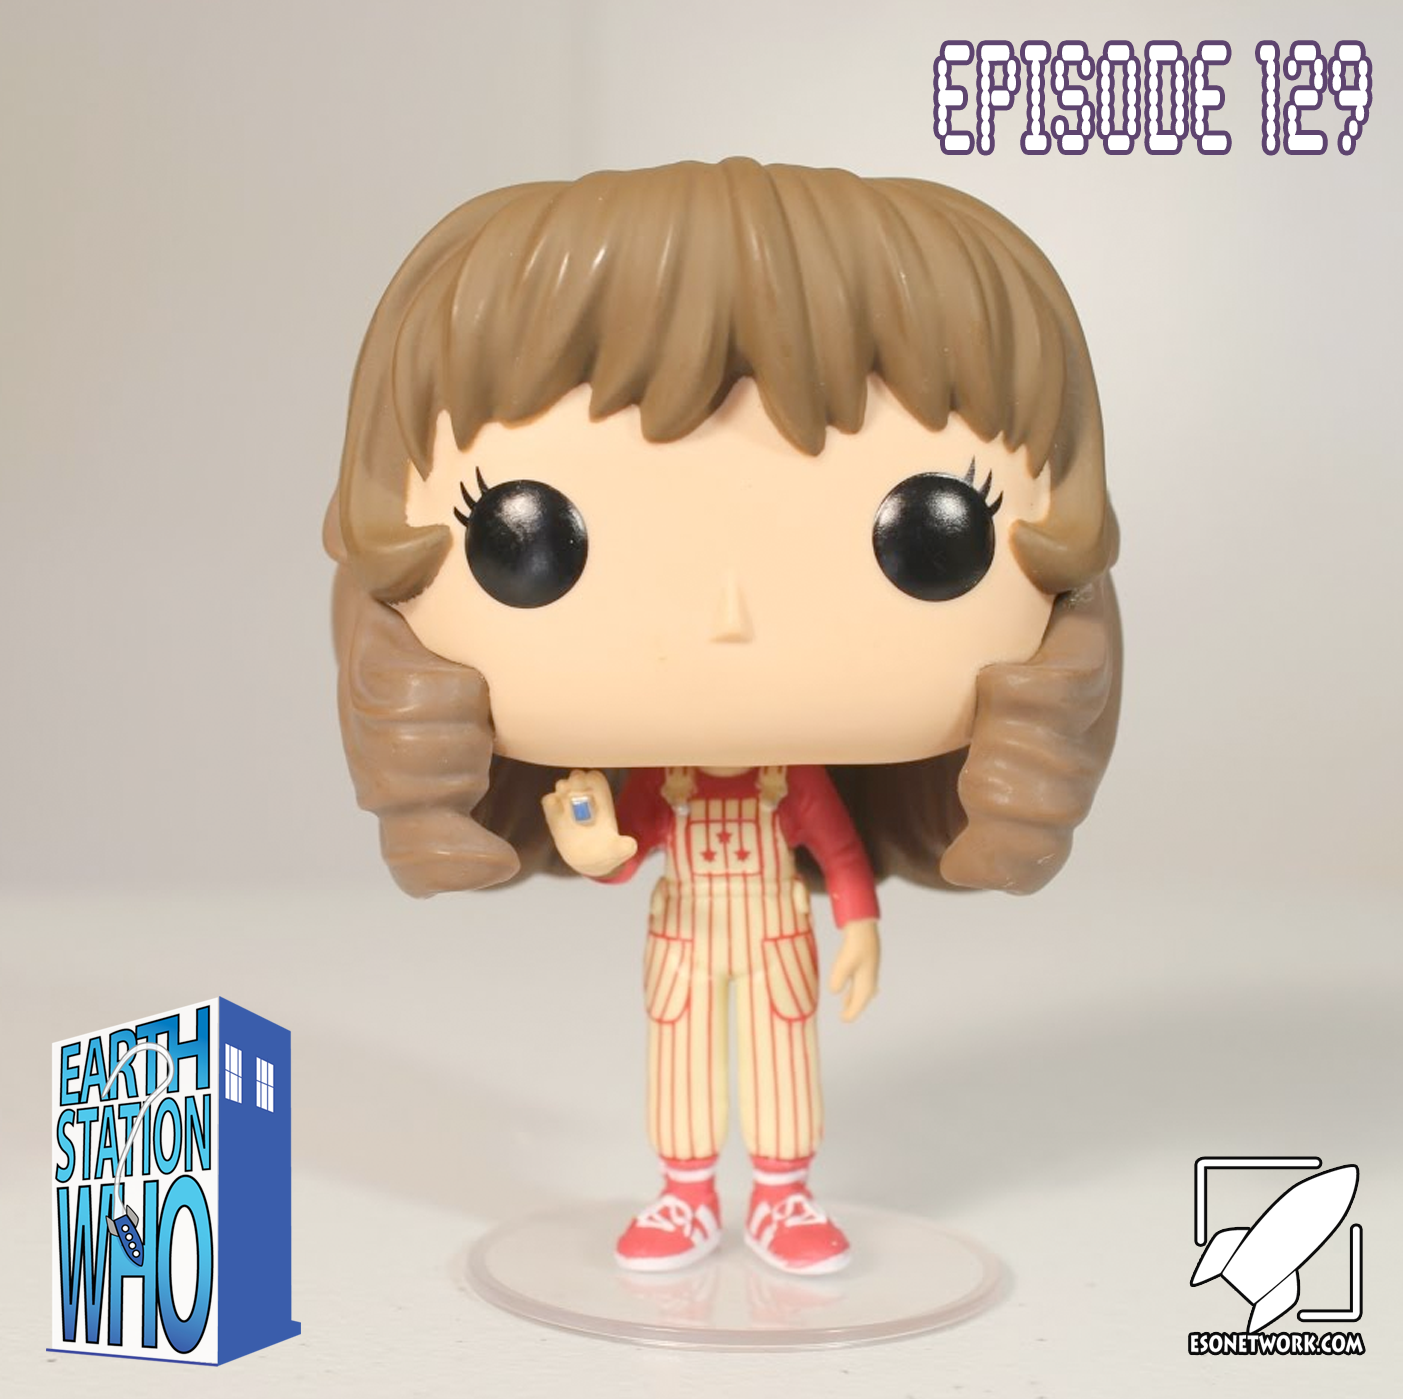 Earth Station Who Ep 129